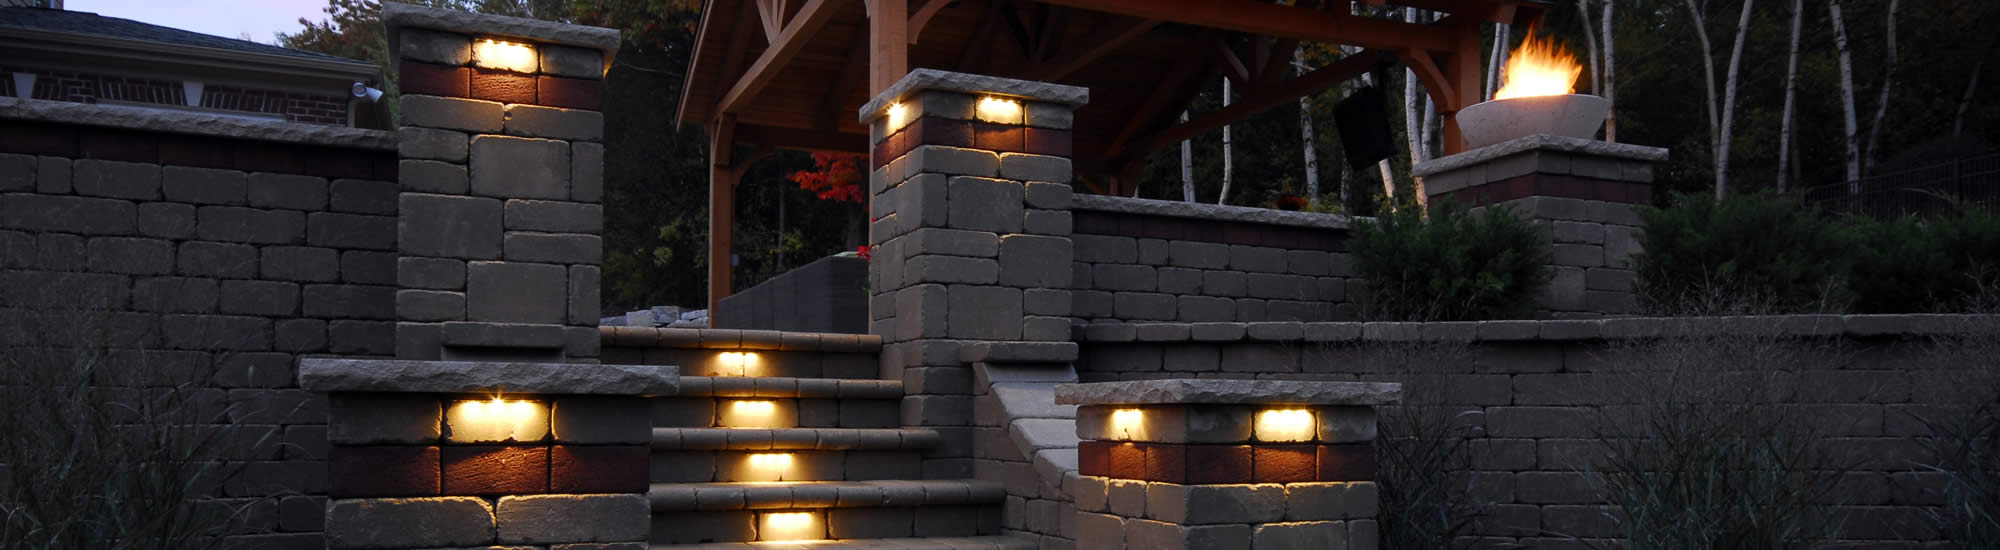 Retaining Wall Construction and Design